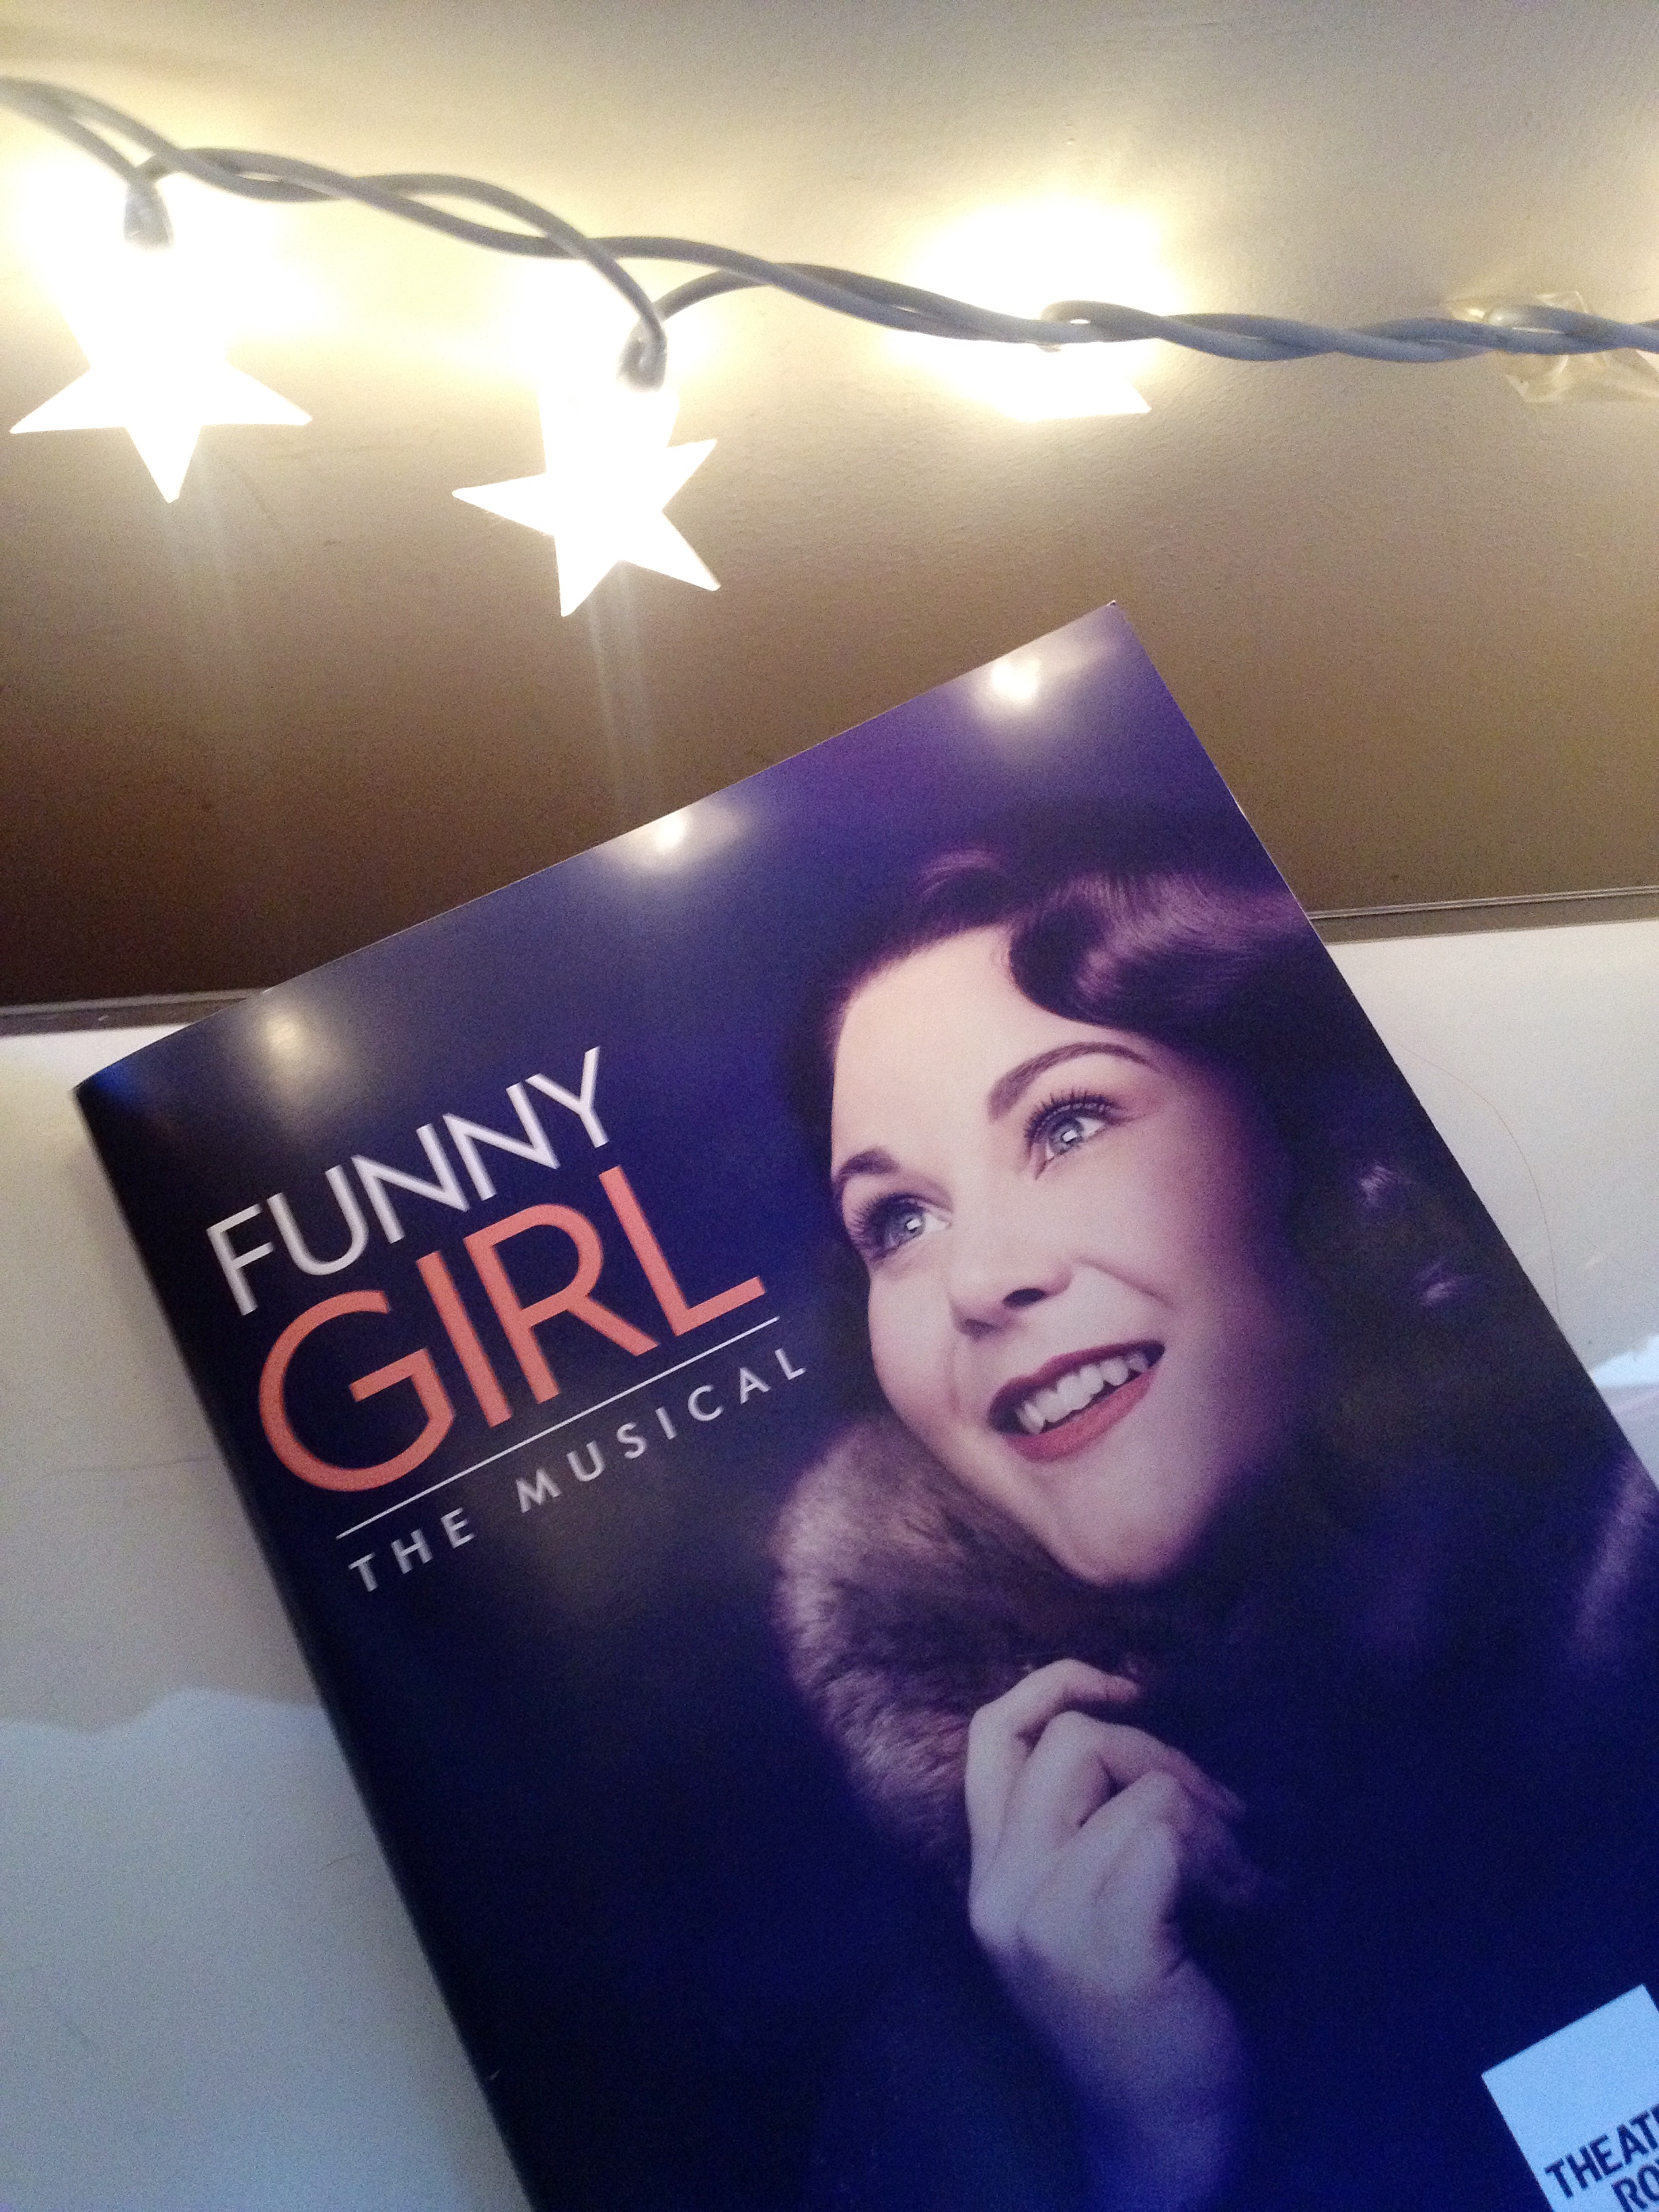 Theatre Review: Funny Girl @ Theatre Royal, Nottingham